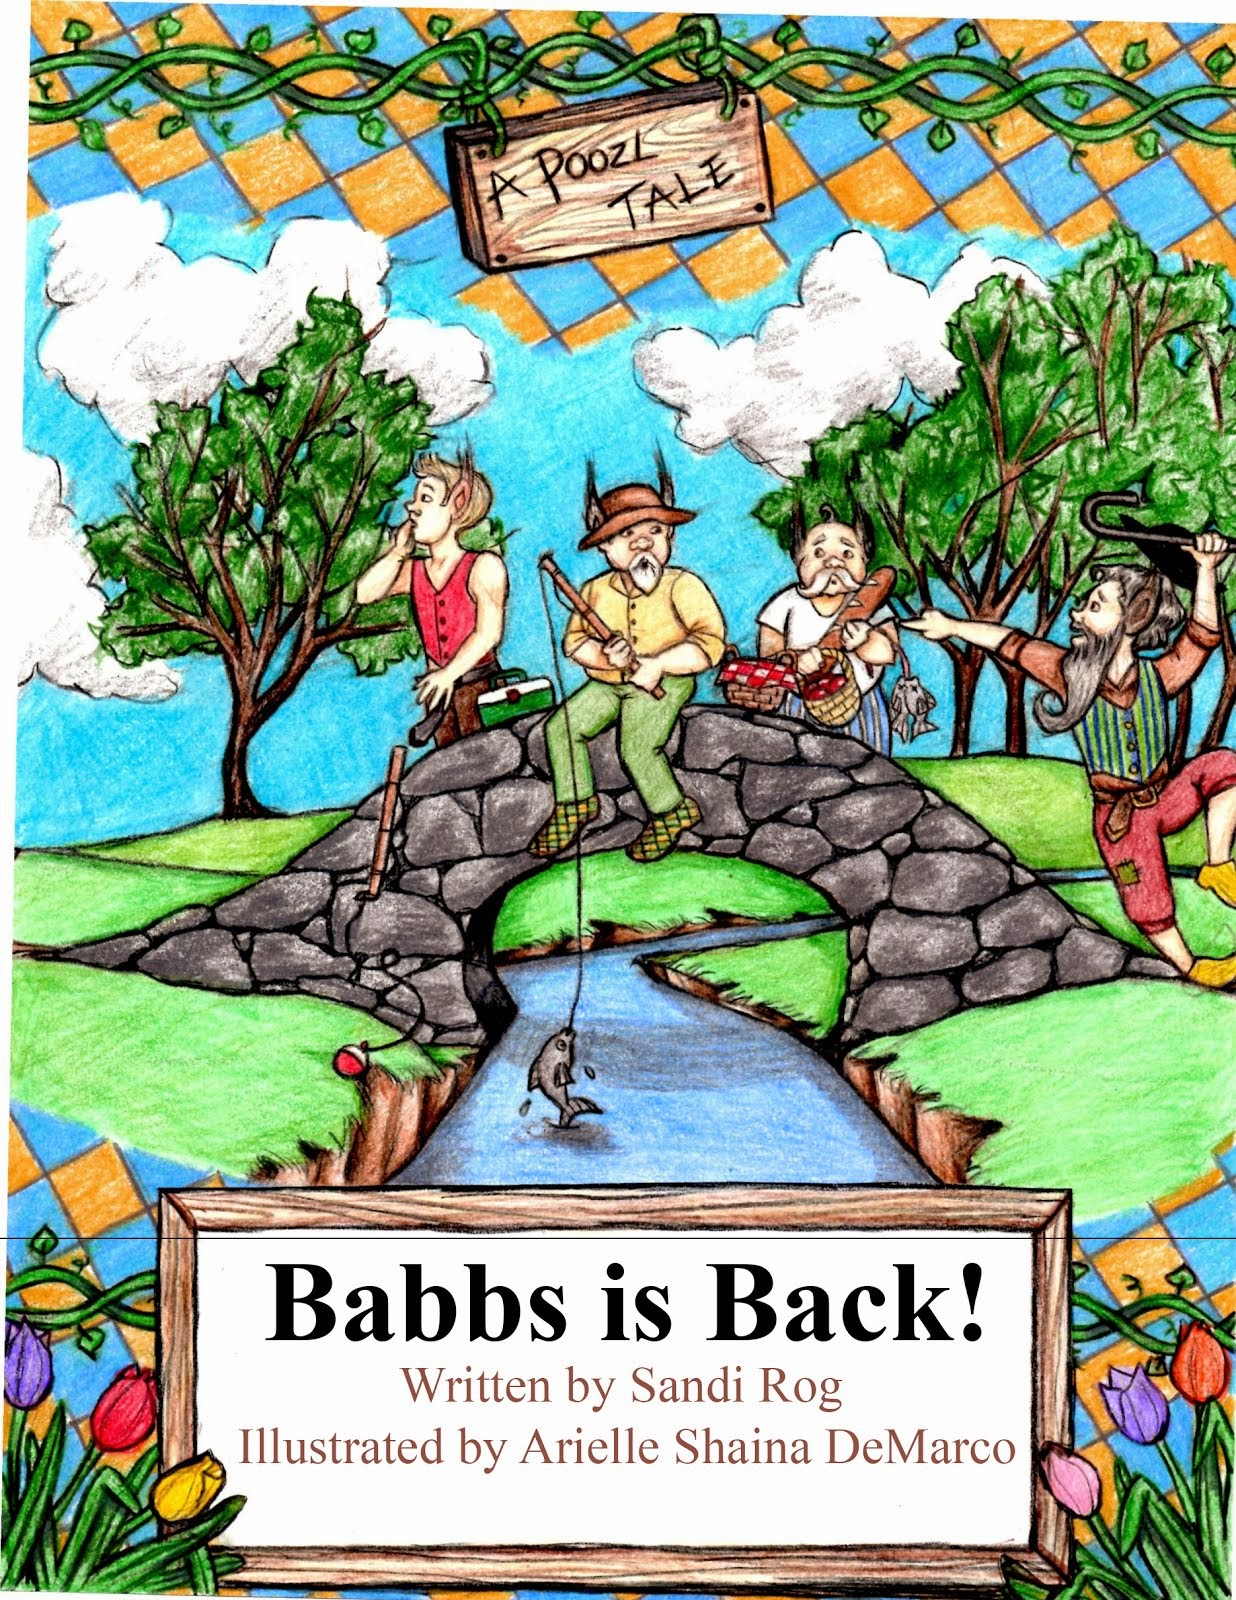 Babbs is Back